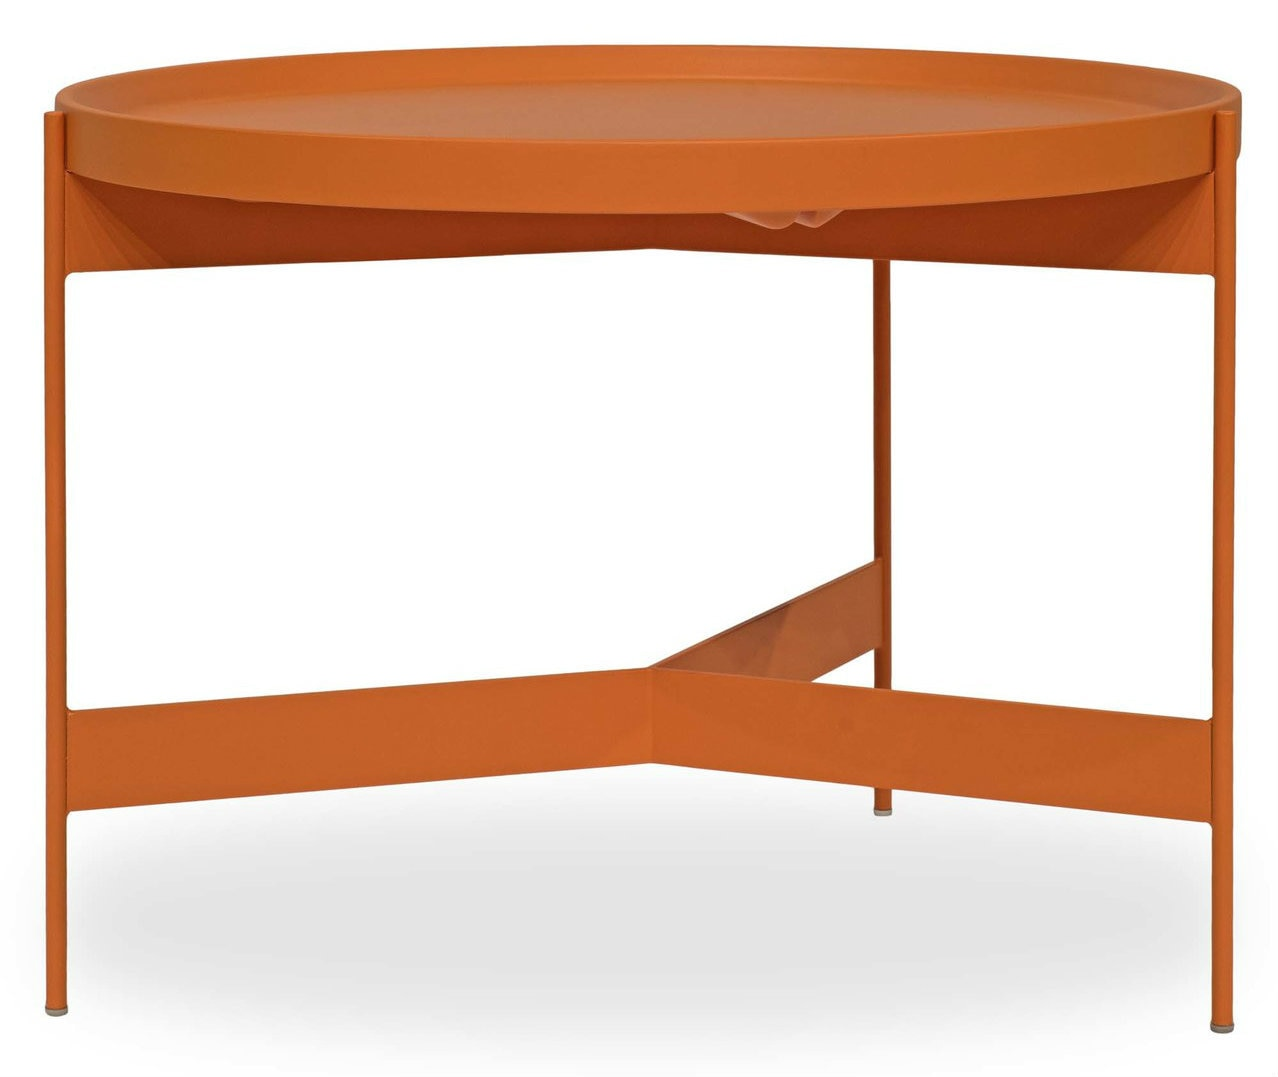 modern coffee tables cantoni mirrored glass accent table with drawer abaco high cocktail orange top wine rack moroccan tray red home decor accents ashley furniture bedding small